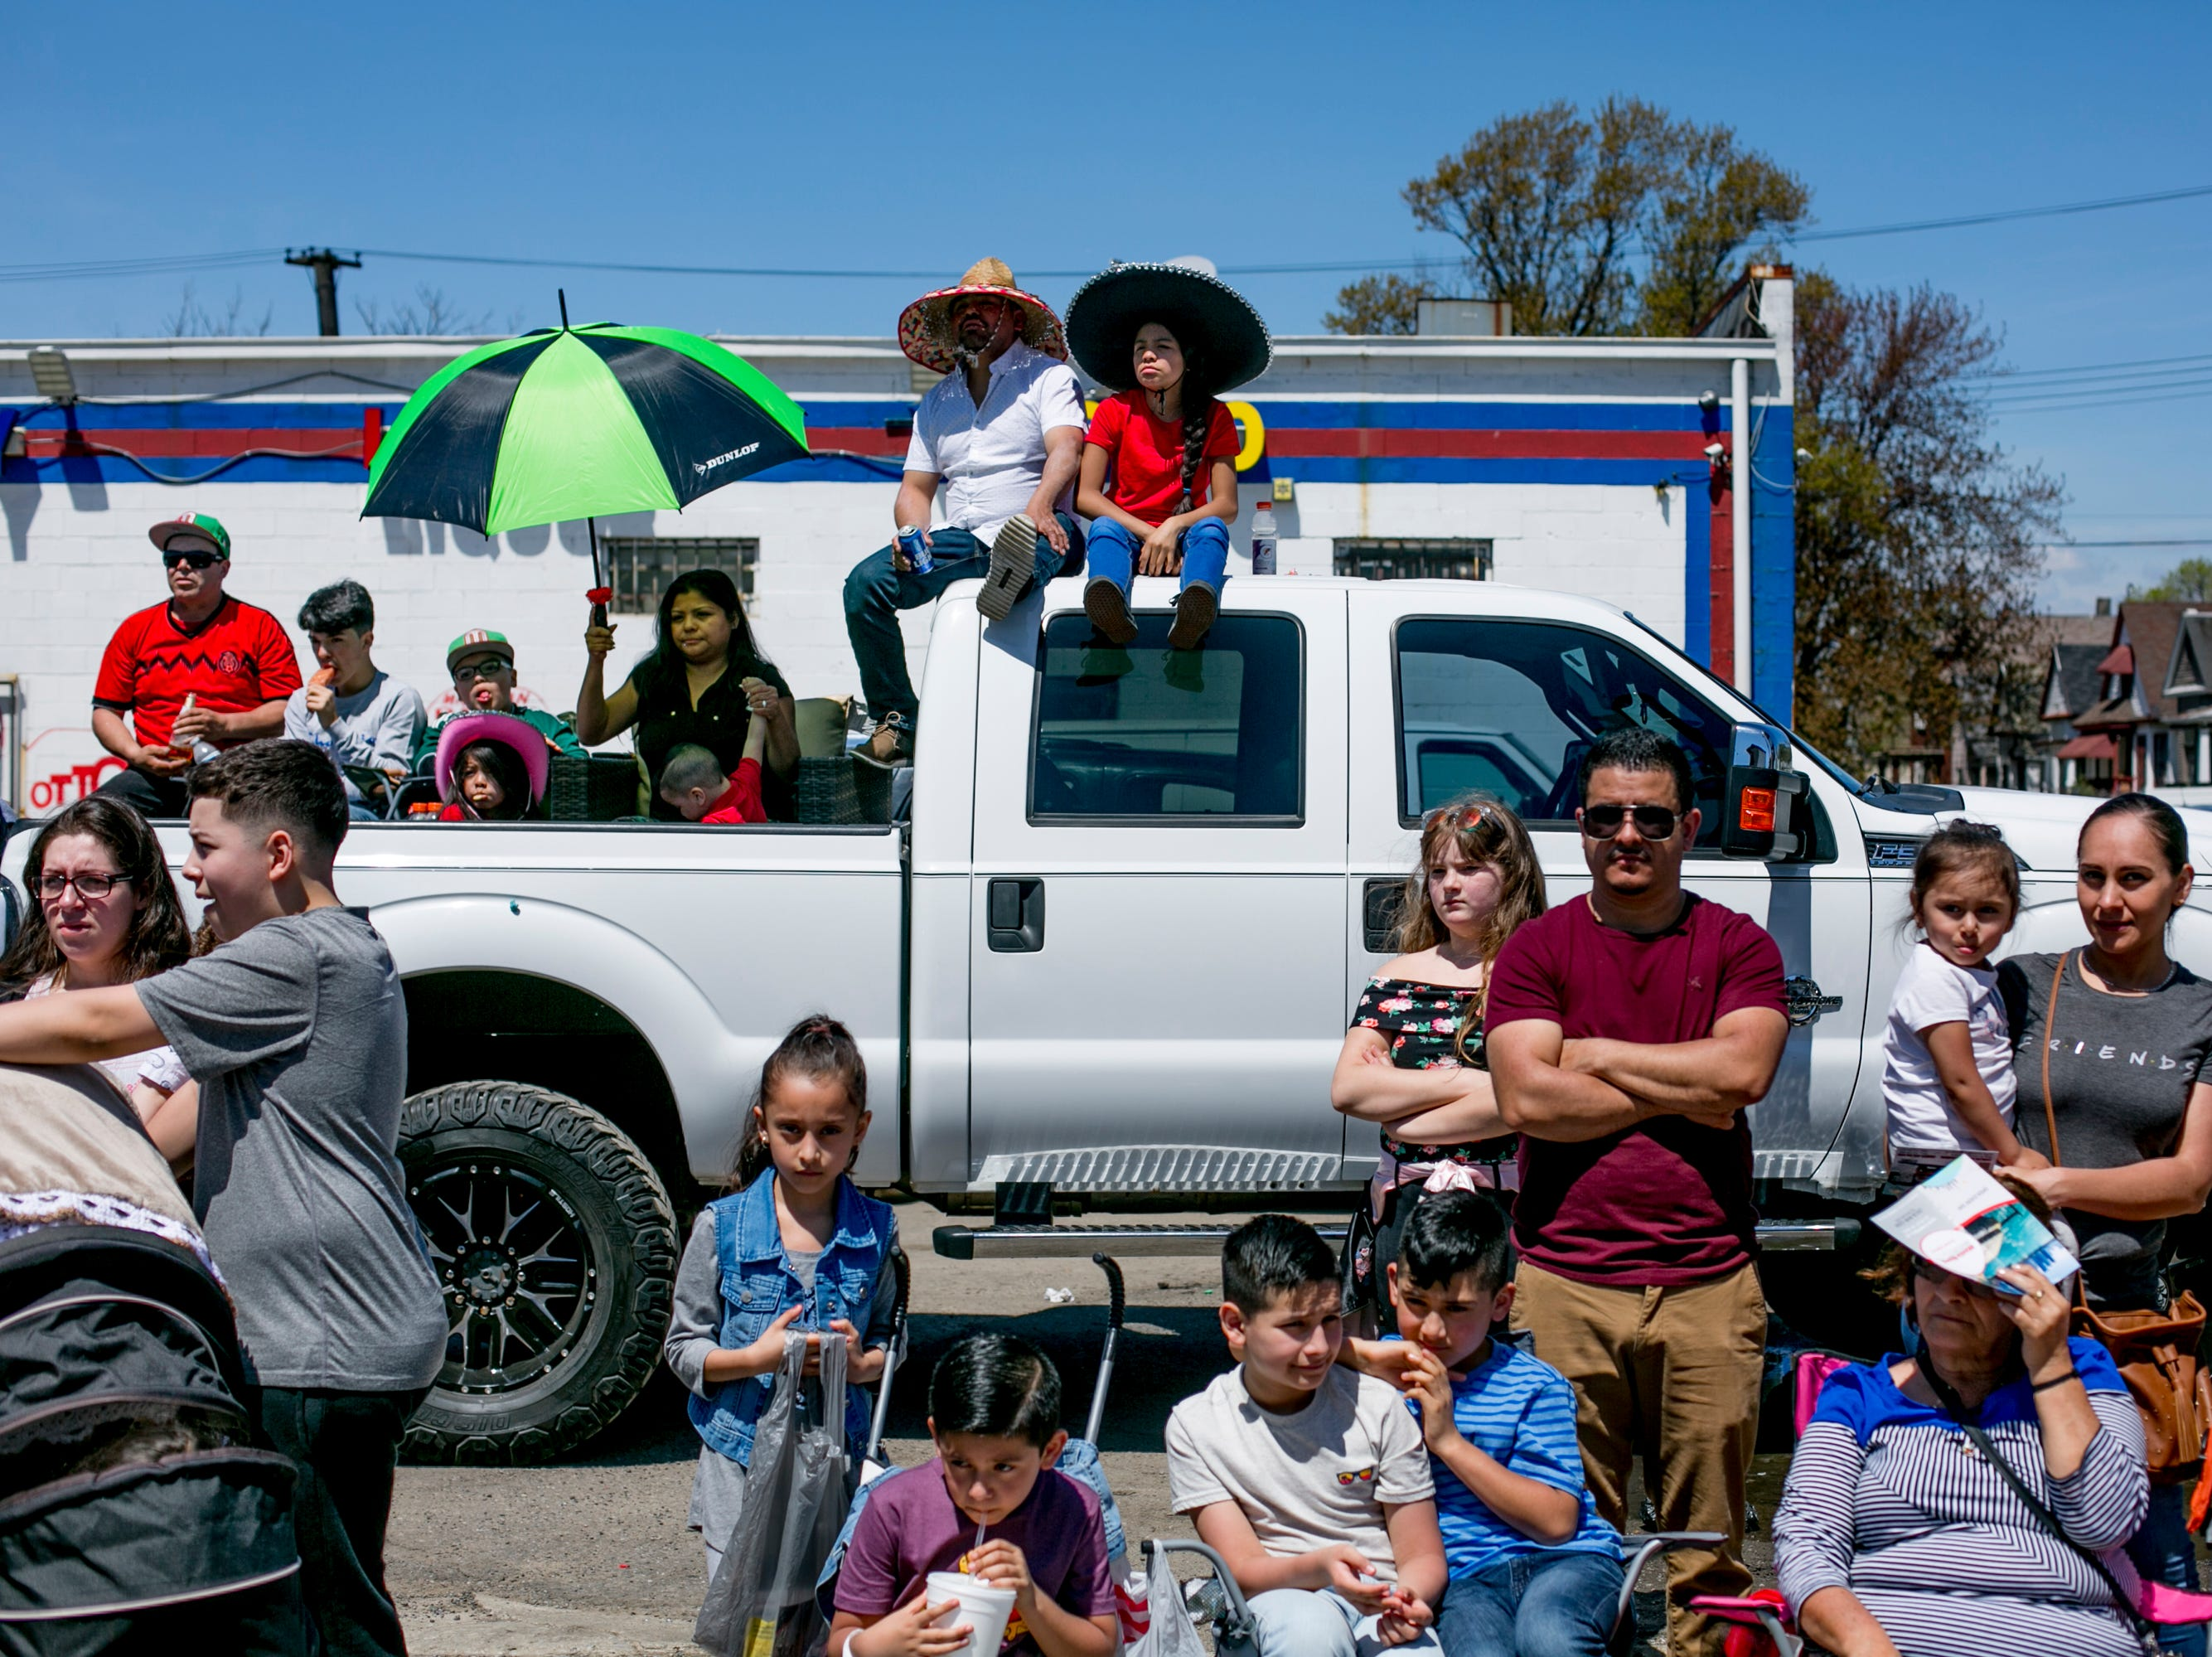 People watch in the 55th Annual Cinco de Mayo parade.